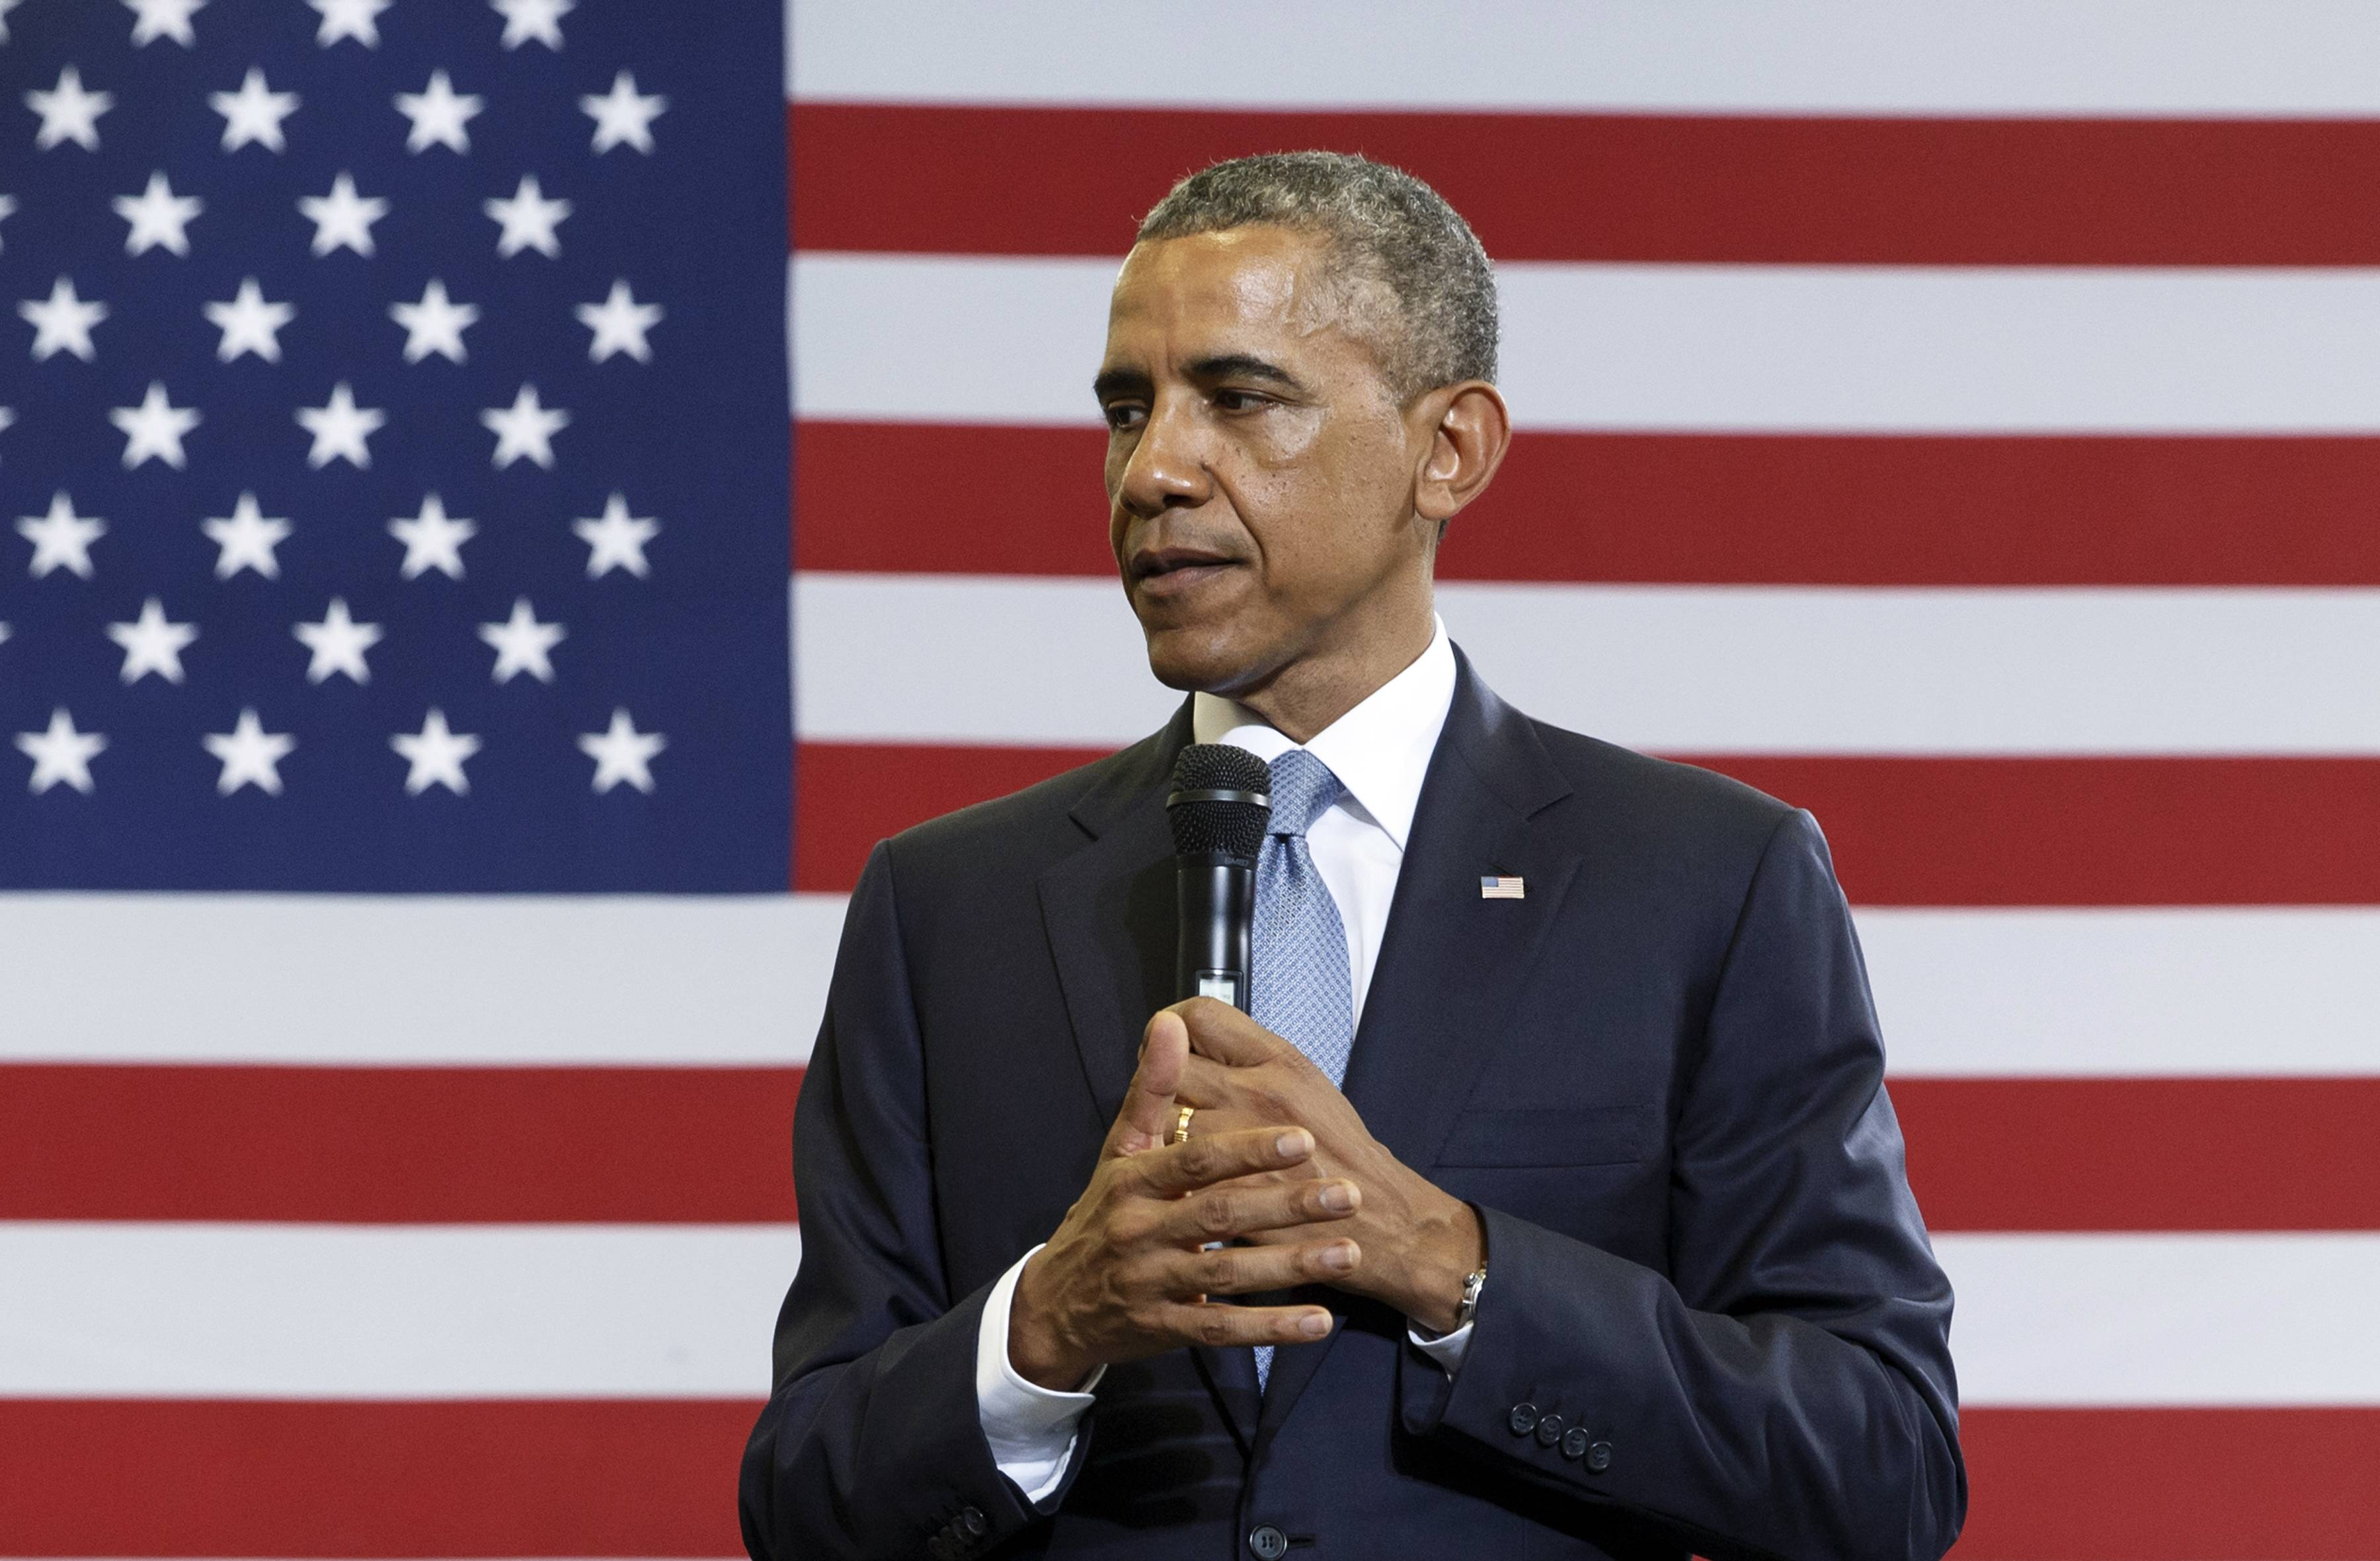 President Barack Obama speaks about the My Brother's Keeper initiative at the Walker Jones Education Campus in Washington Monday. Within hours of each other, two federal appeals courts issued contradictory rulings on a key financing issue of the health care law Tuesday.